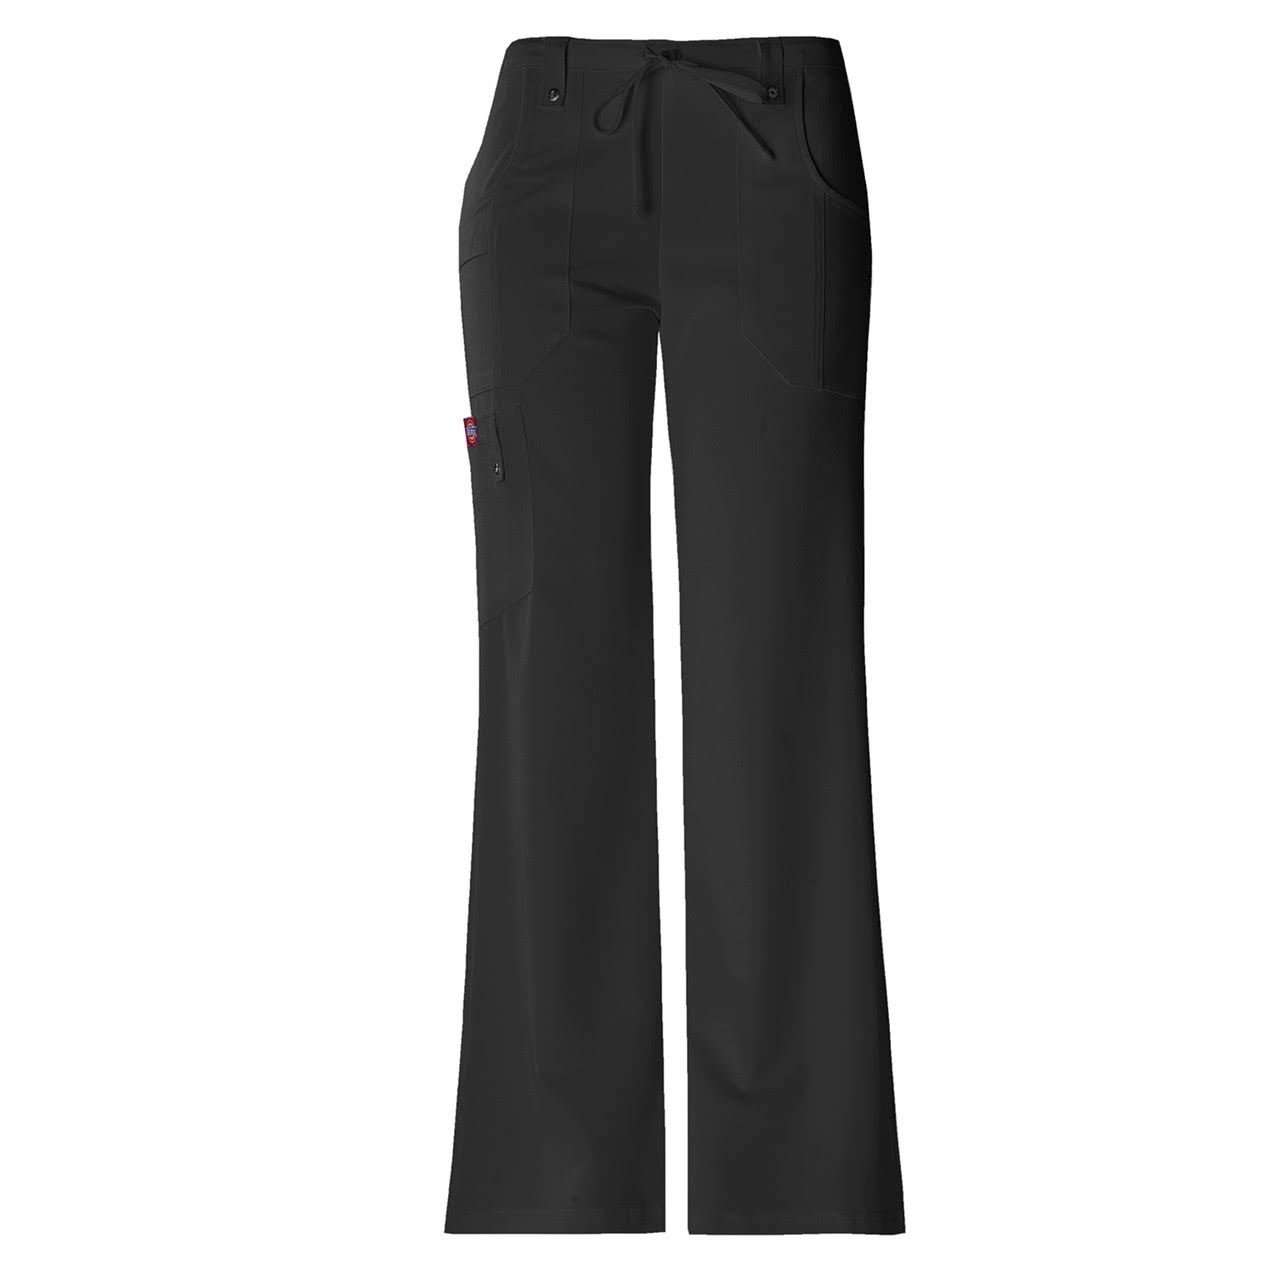 Dickies Women's Xtreme Stretch Tall Drawstring Scrub Pant - XS - Black